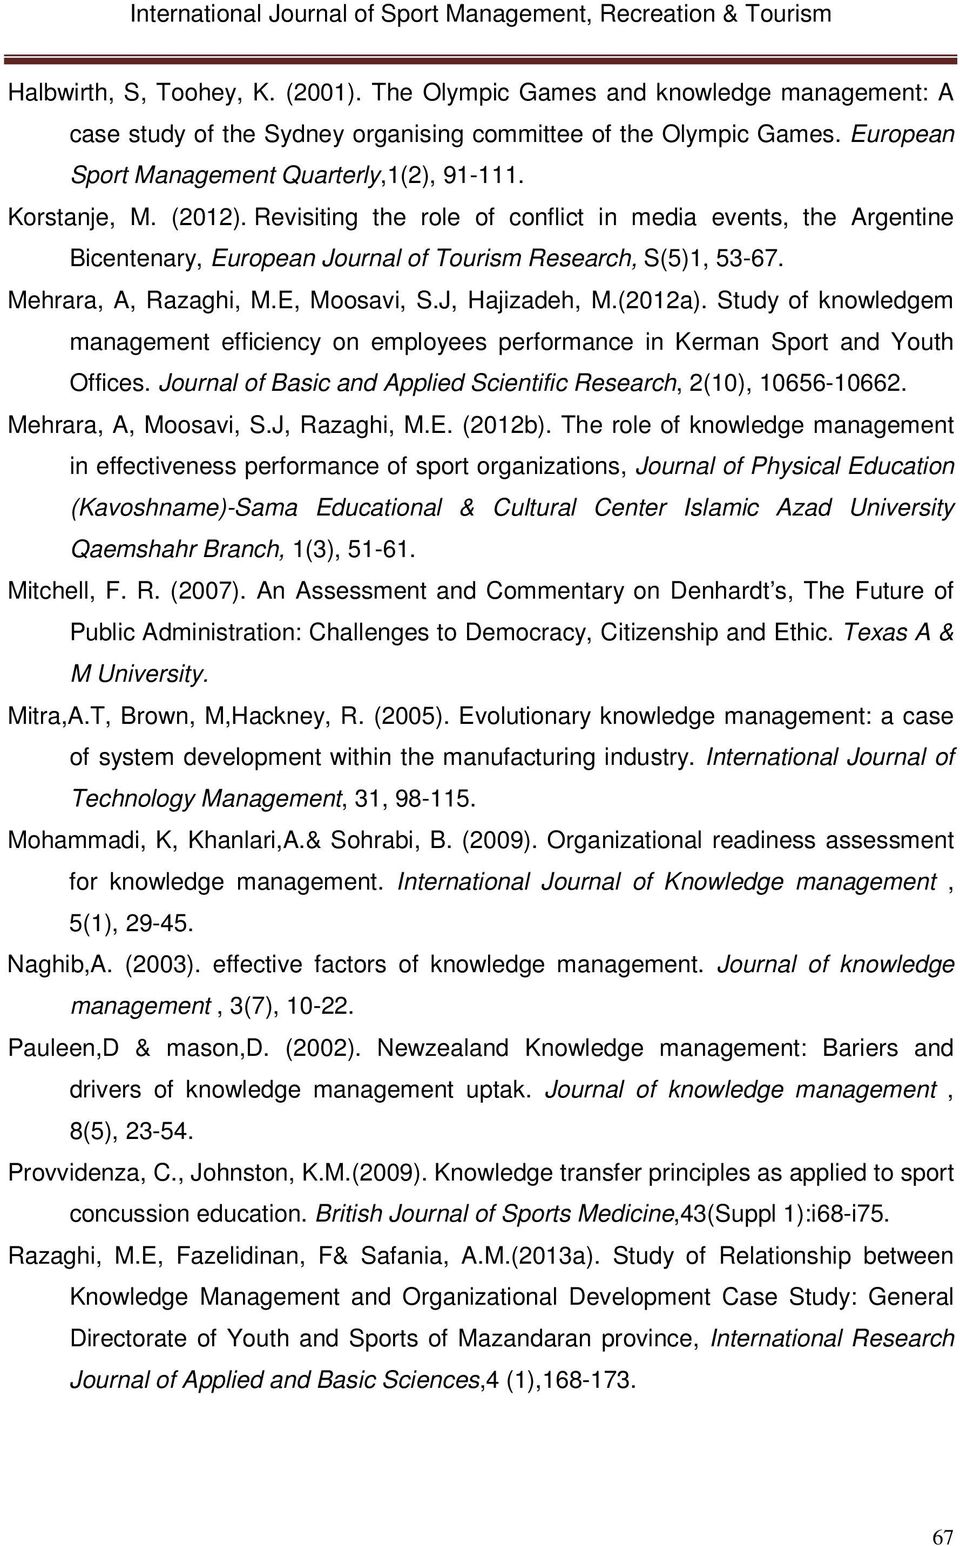 J, Hajizadeh, M.(2012a). Study of knowledgem management efficiency on employees performance in Kerman Sport and Youth Offices. Journal of Basic and Applied Scientific Research, 2(10), 10656-10662.